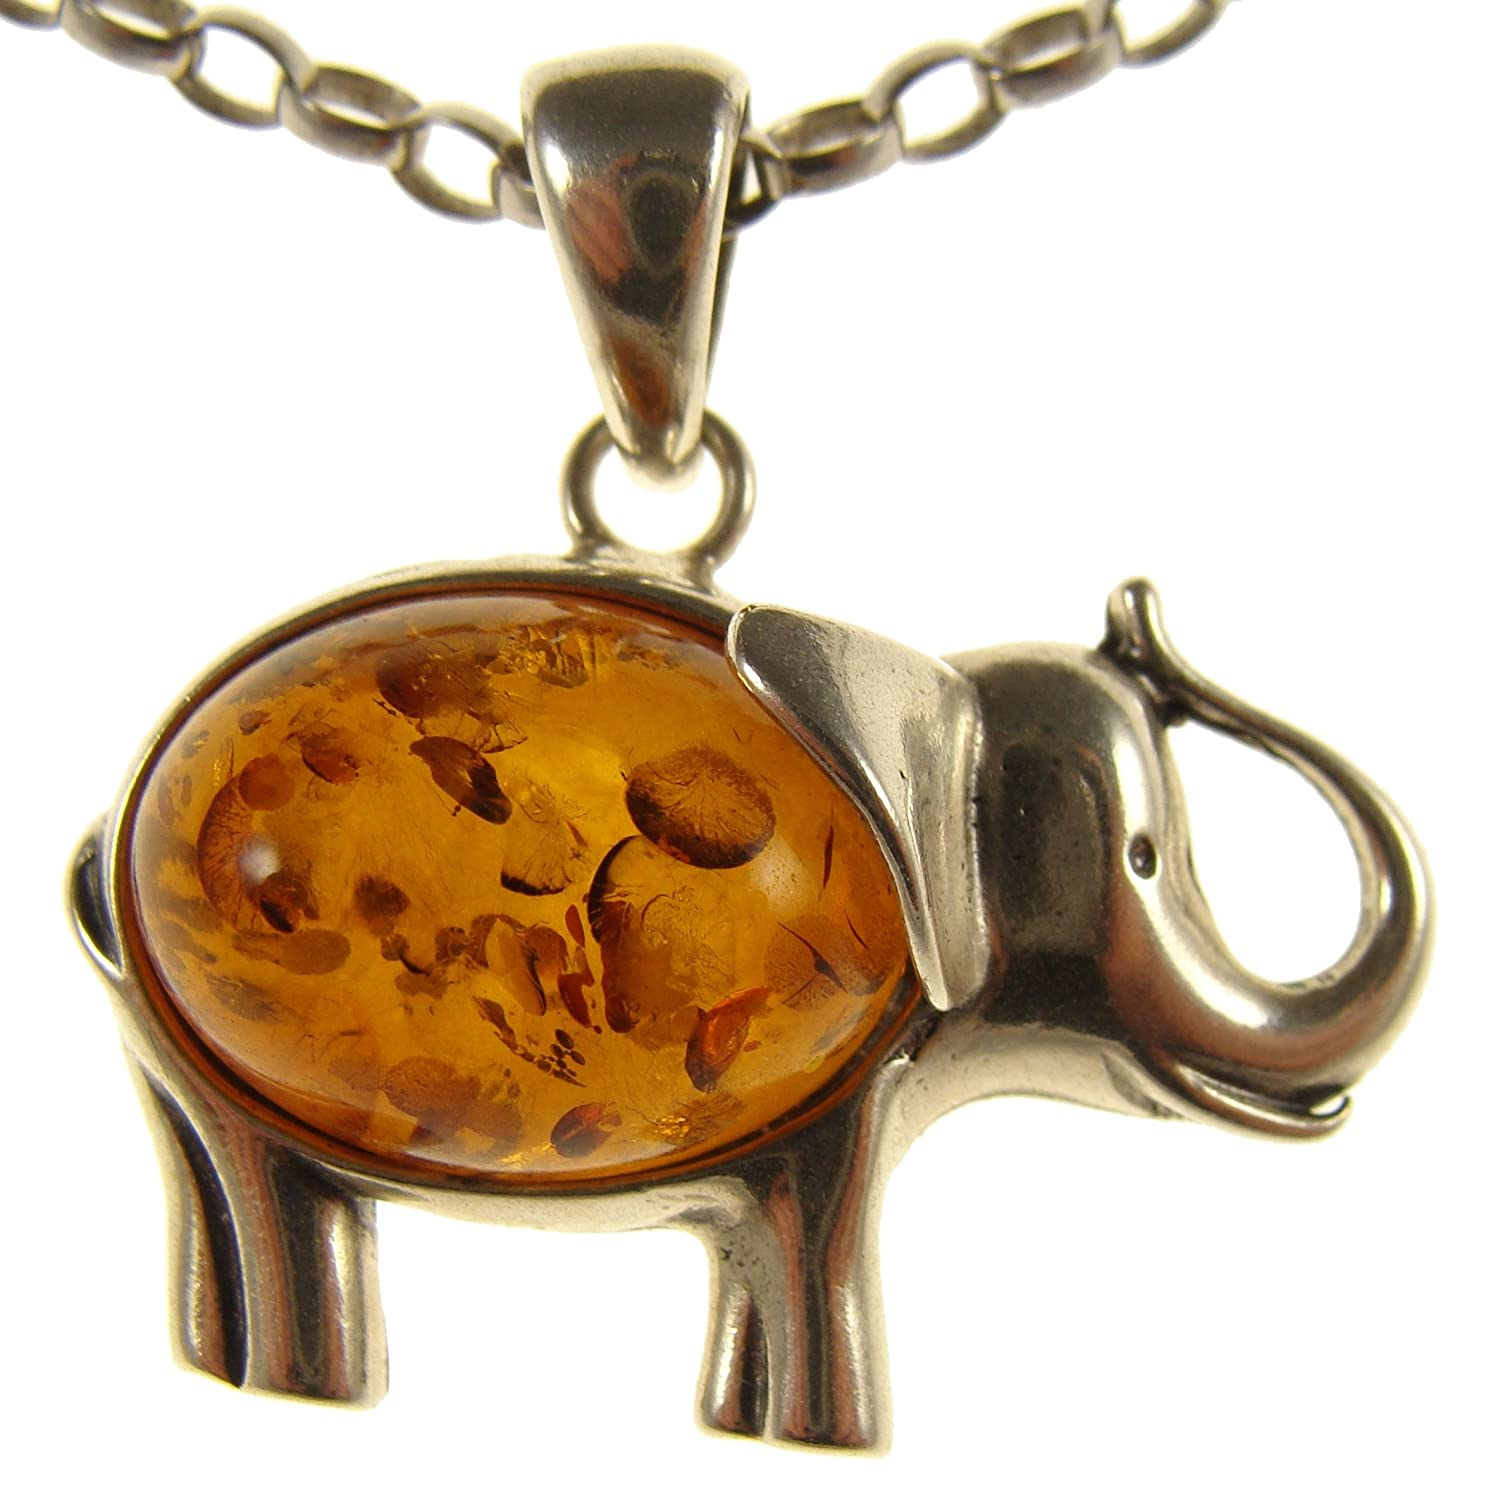 BALTIC AMBER AND STERLING SILVER 925 ELEPHANT PENDANT NECKLACE 14 16 18 20 22 24 26 28 30 32 34 1mm ITALIAN SNAKE CHAIN